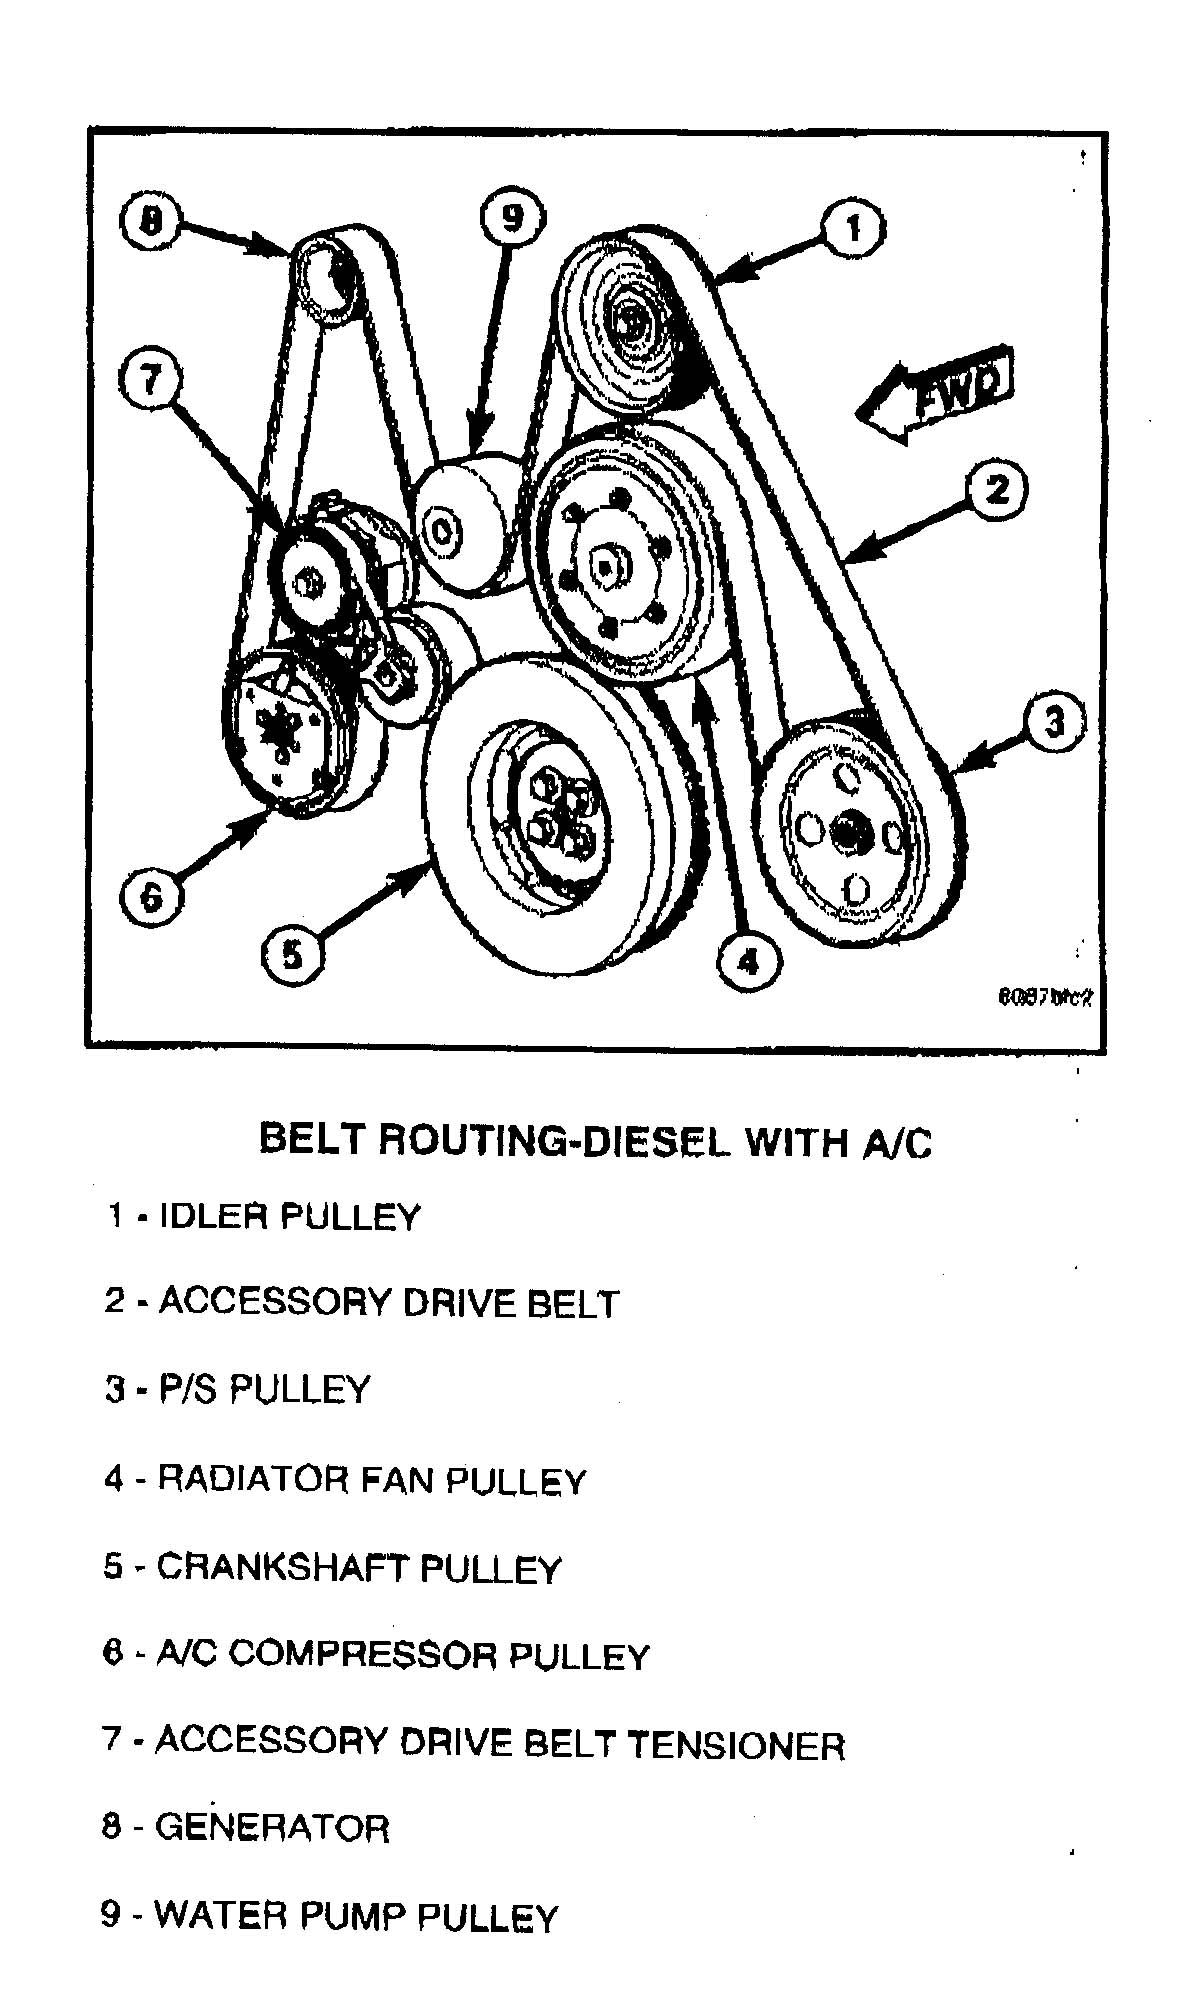 6 7 belt routing diagram dodge diesel diesel truck resource 93 Chevy 1500 Belt Diagrams 6 7 belt routing diagram dodge diesel diesel truck resource forums